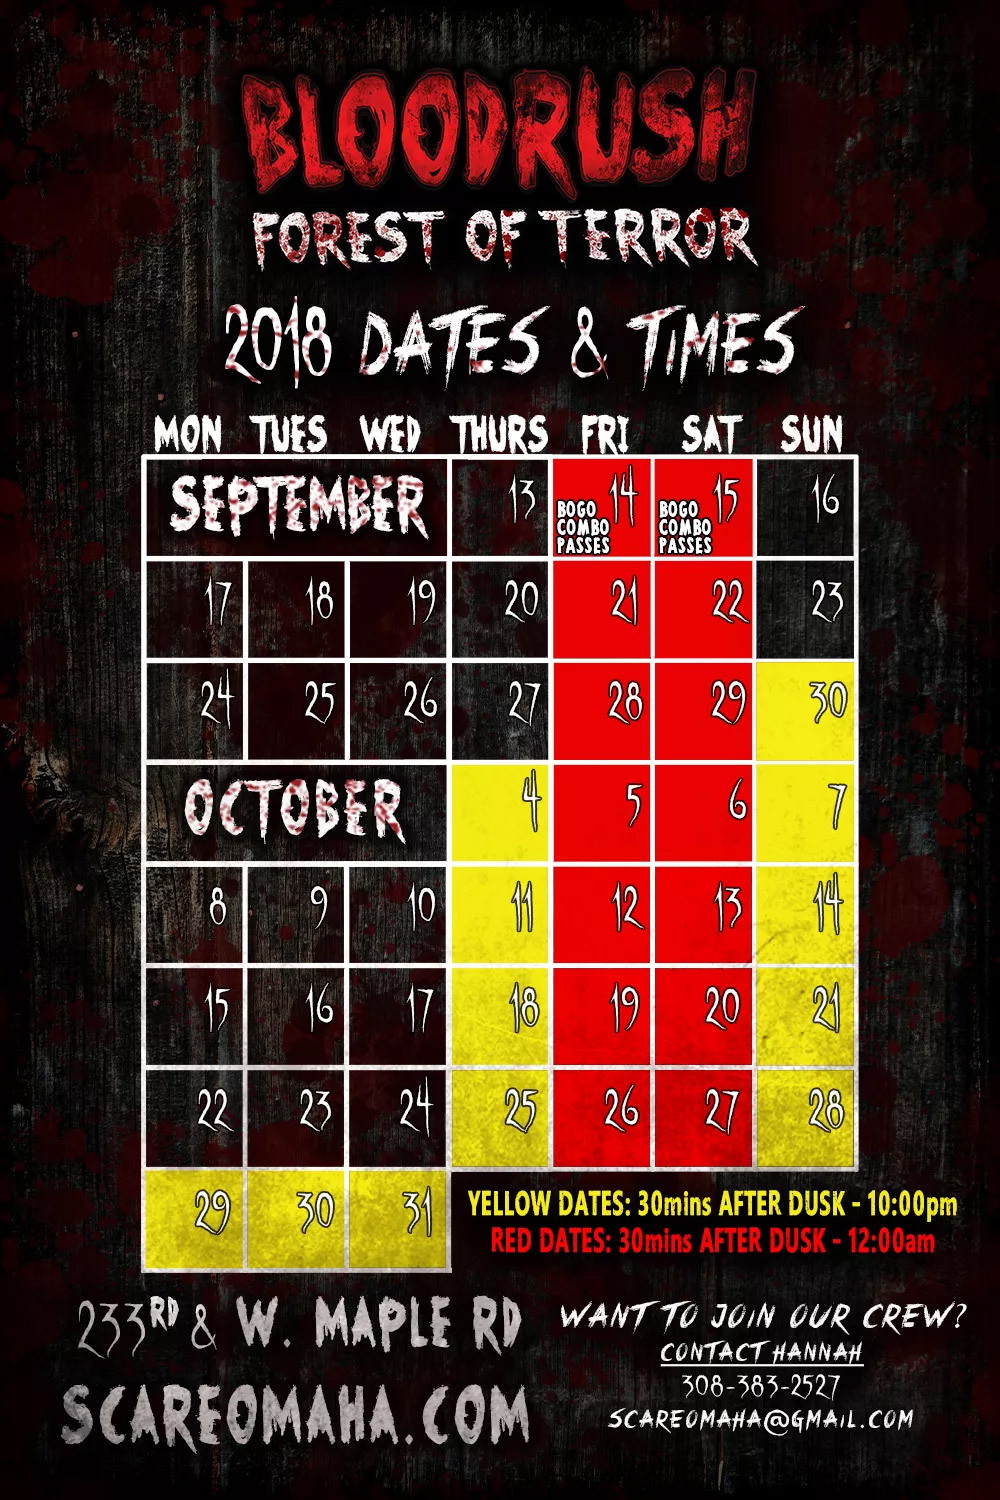 Bloodrush haunted house in Elkhorn, Nebraska Open Dates